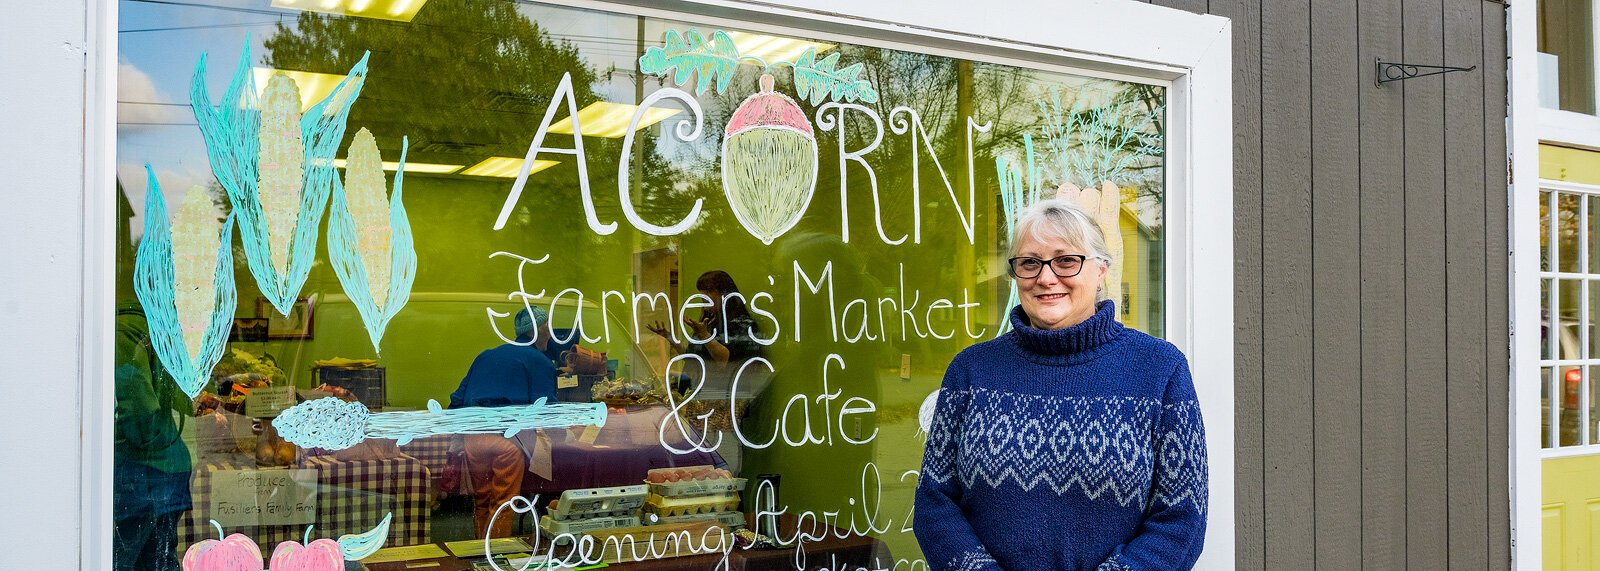 5 Healthy Towns coalition member Ruth Vanbogelen at the future home of Acorn Farmers' Market and Cafe in Manchester.